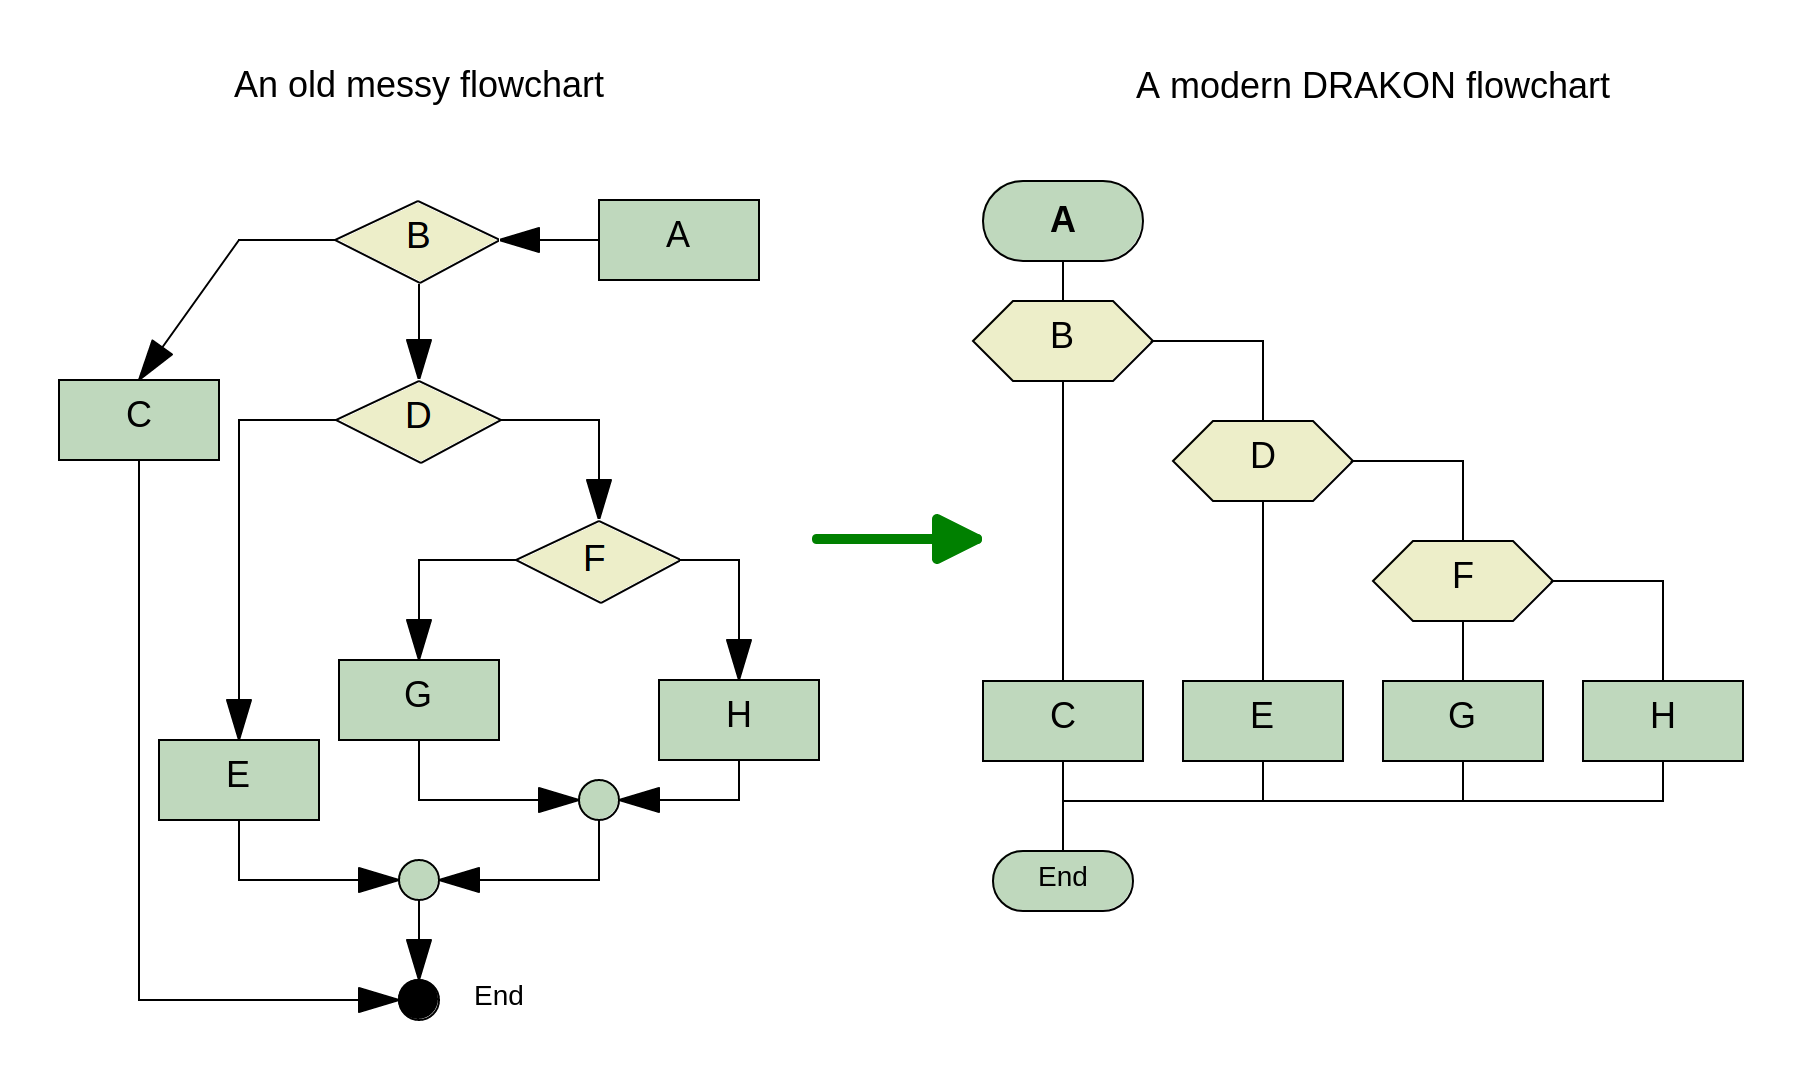 How DRAKON improves flowcharts